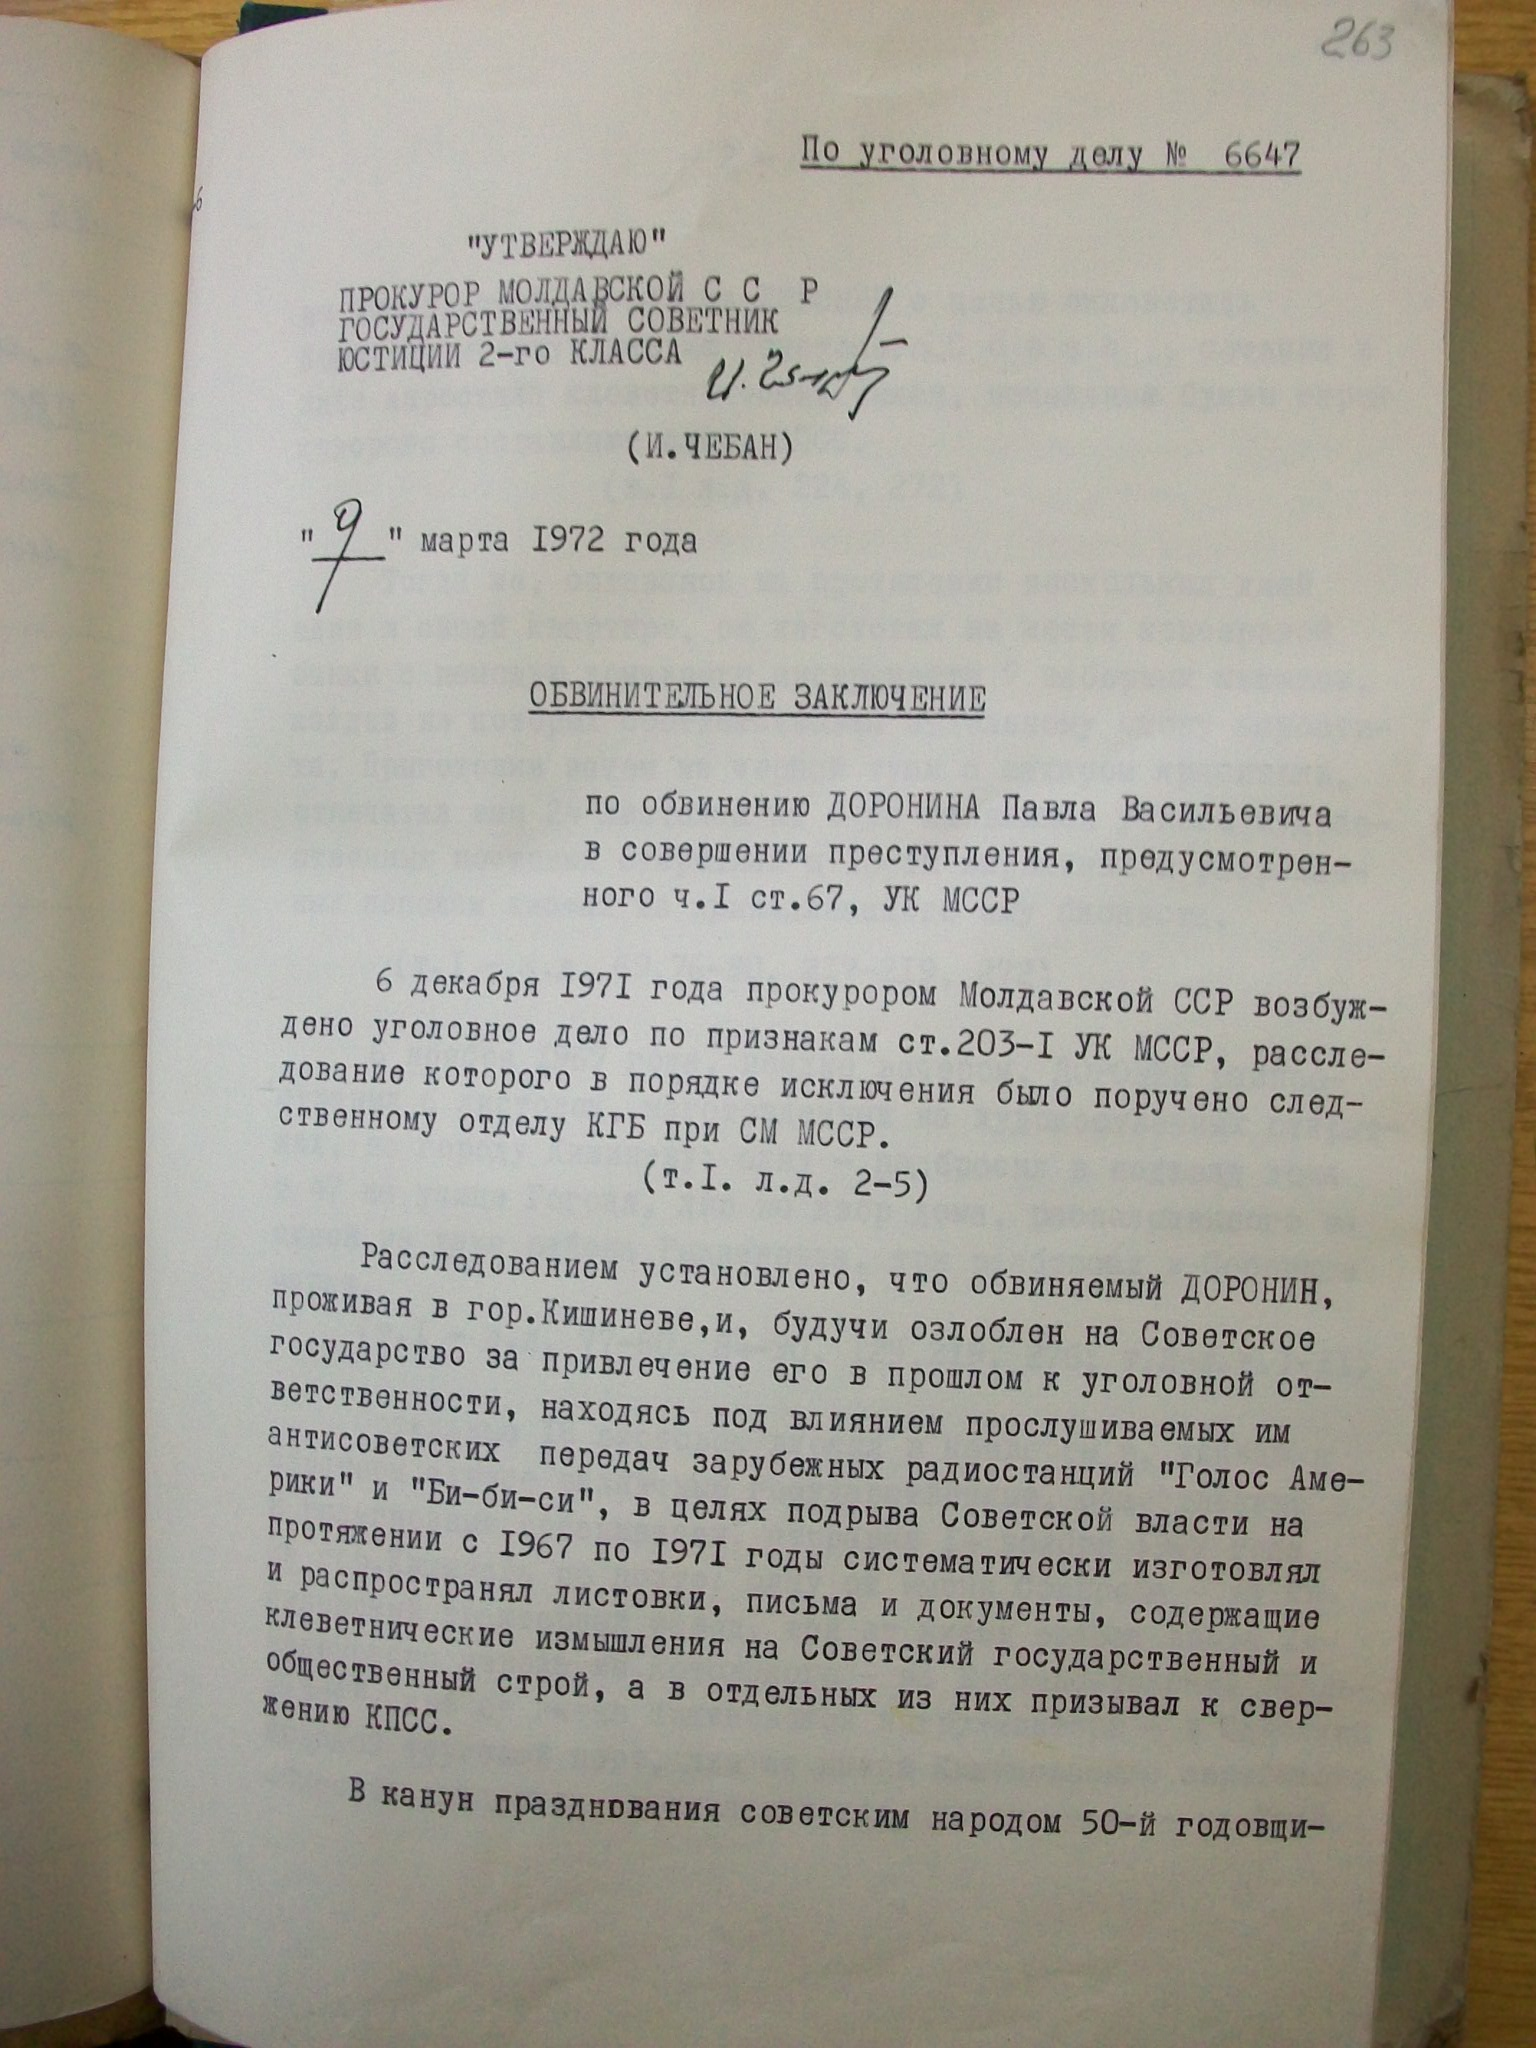 First Page of the Official Accusatory Act concerning the Case of Pavel Doronin